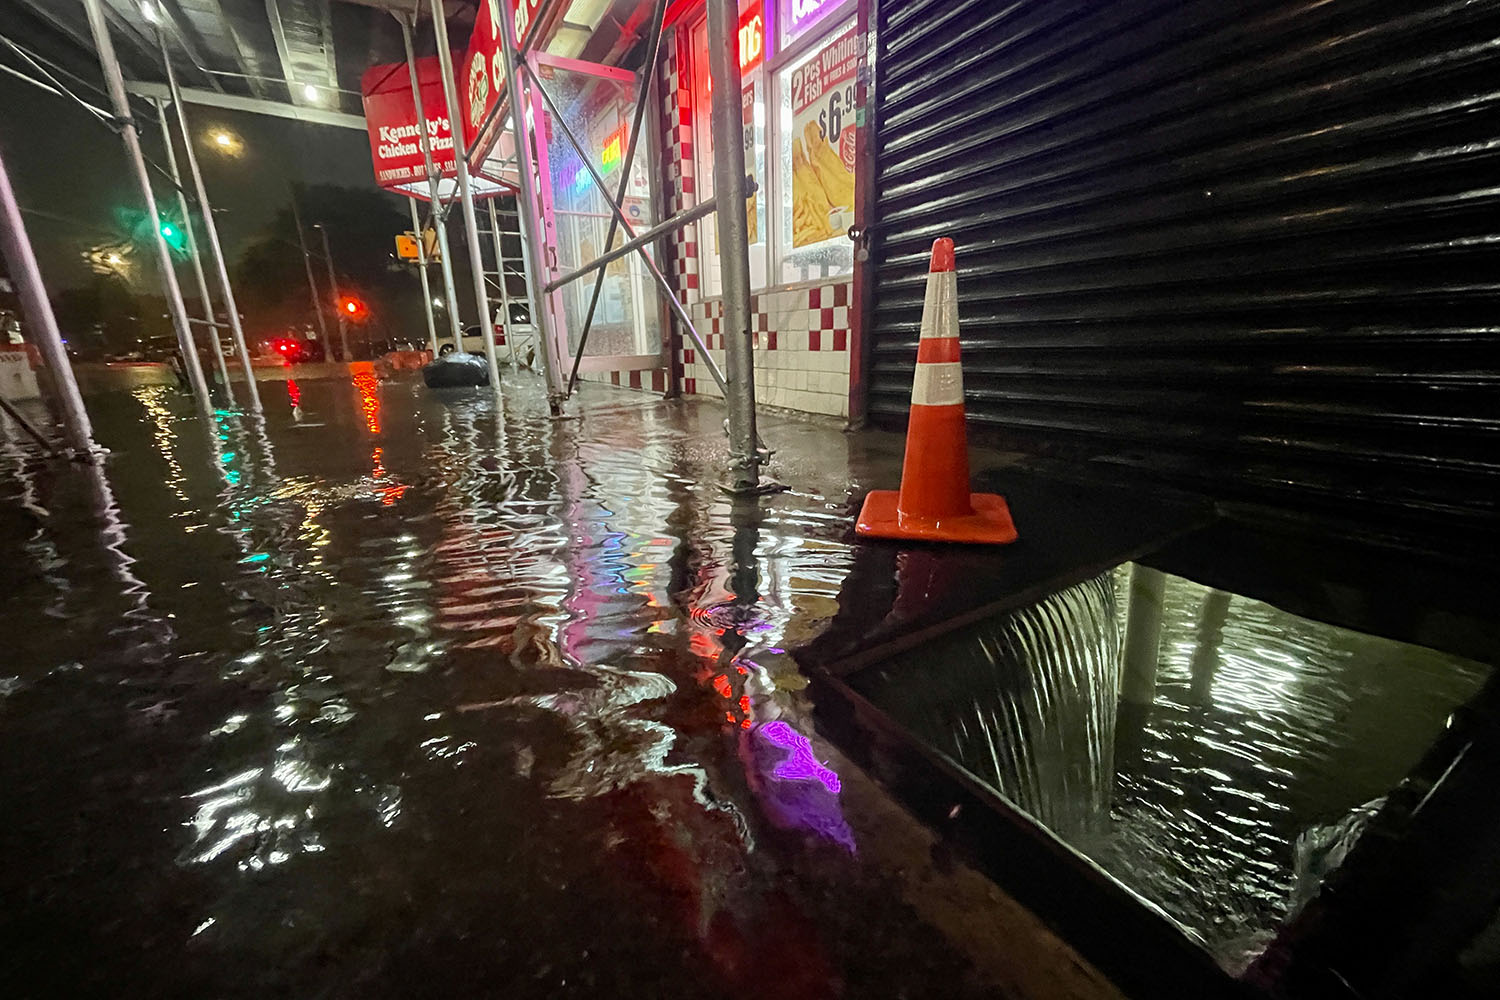 Rainfall from Hurricane Ida floods the basement of a local business in New York City on Sept. 1. David Dee Delgado/Getty Images